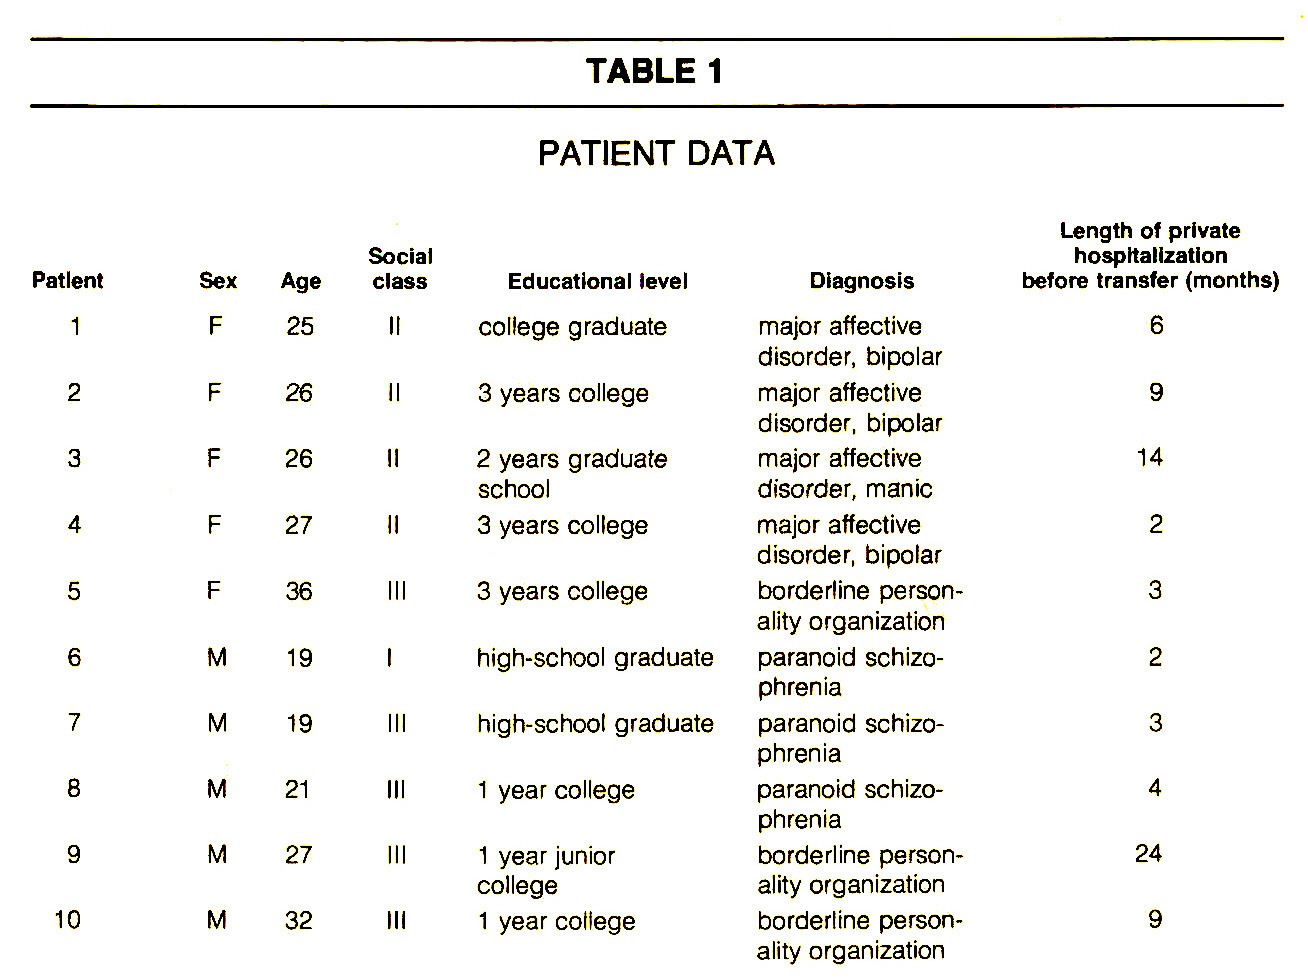 TABLE 1PATIENT DATA